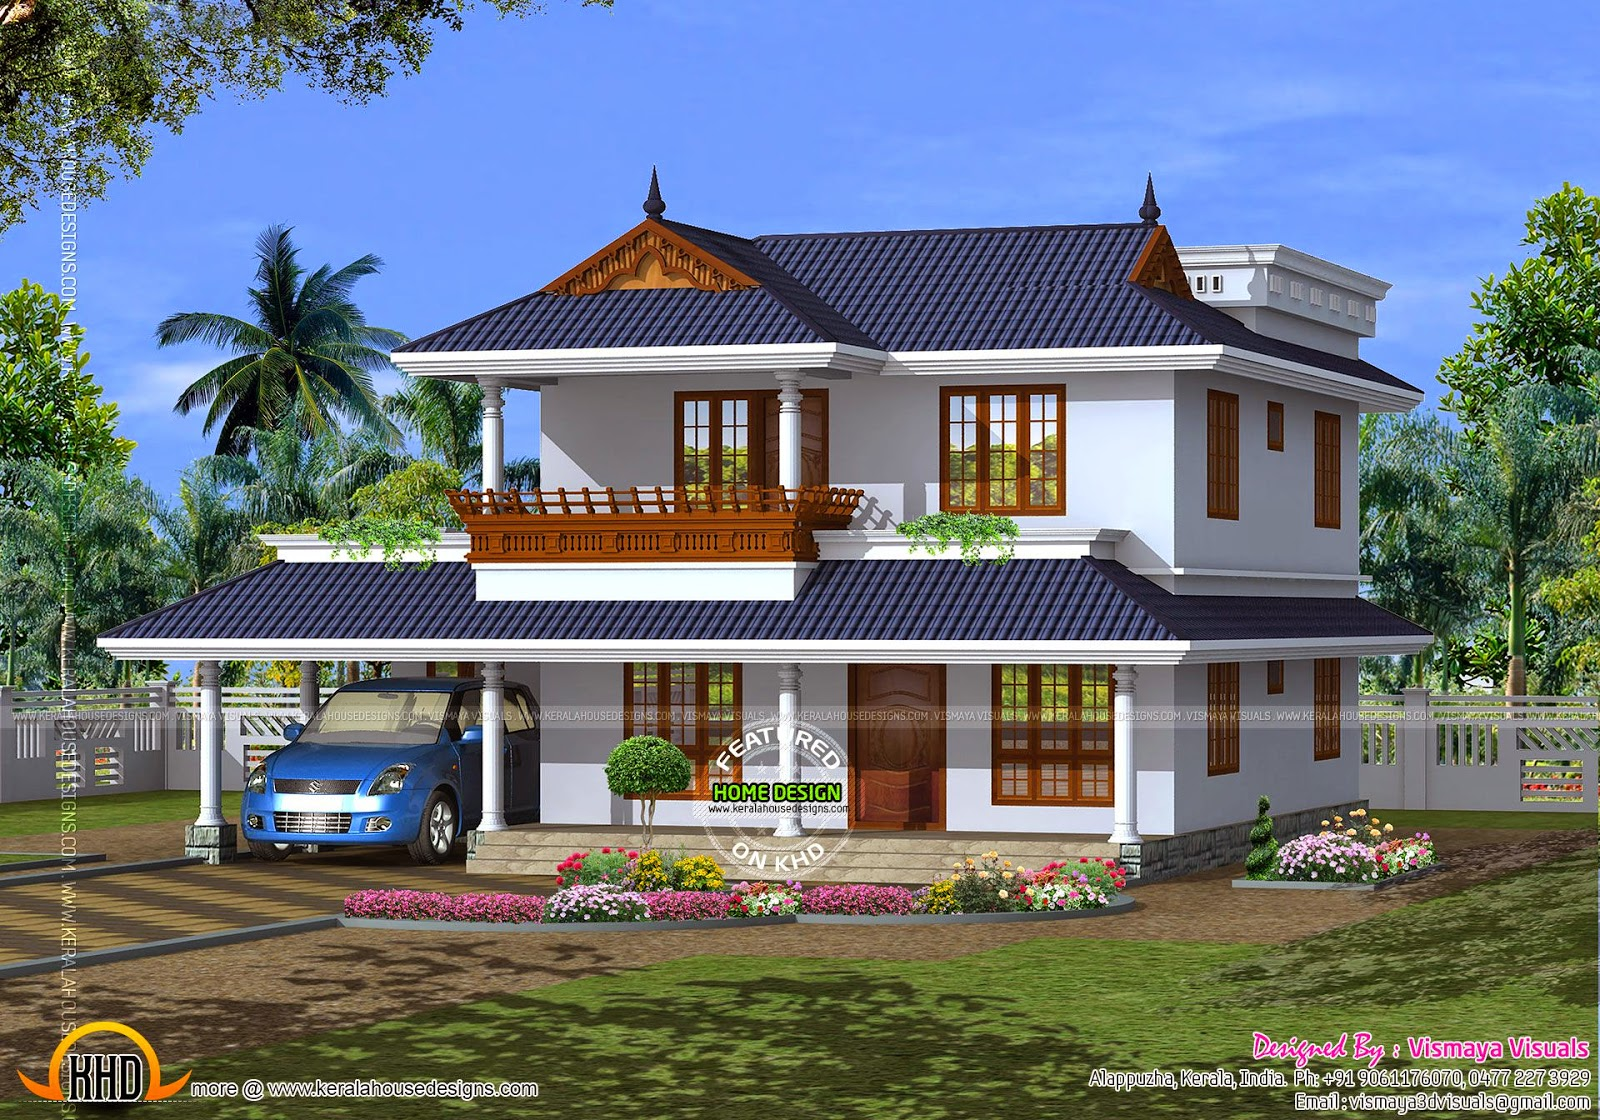 House model kerala kerala home design and floor plans for Kerala model house photos with details